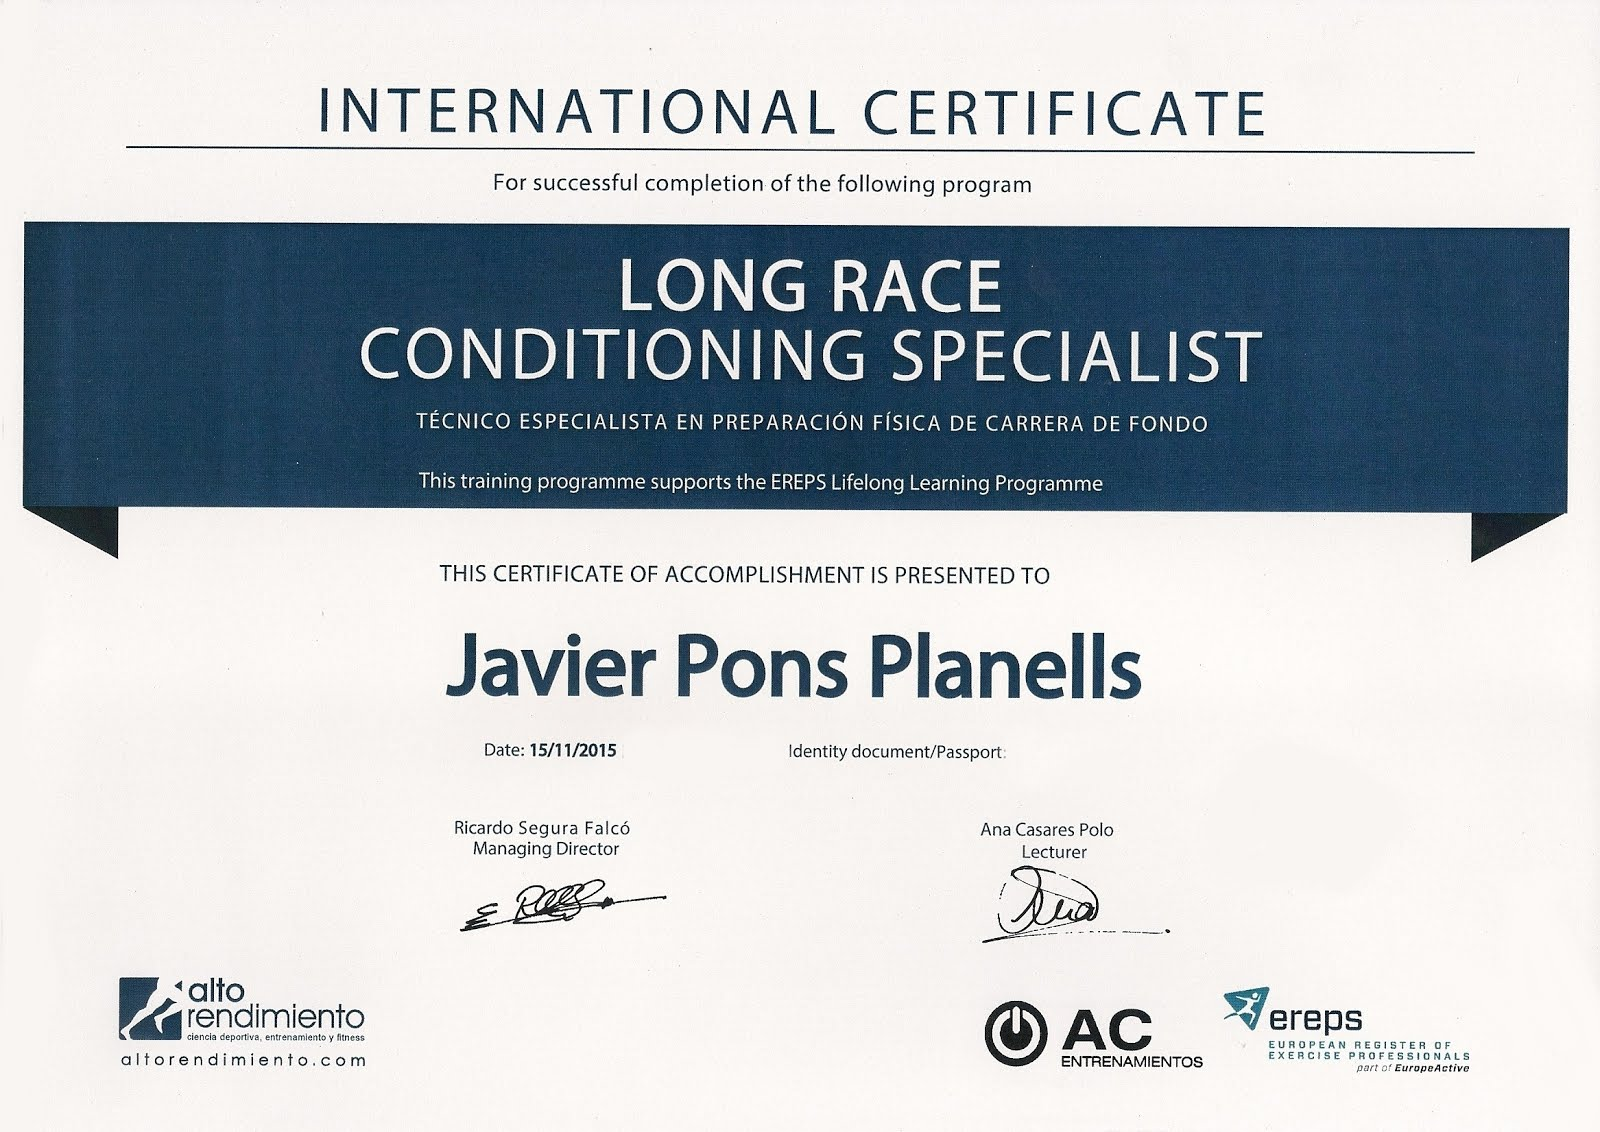 INTERNATIONAL CERTIFICATE LONG RACE CONDITIONING SPECIALIST